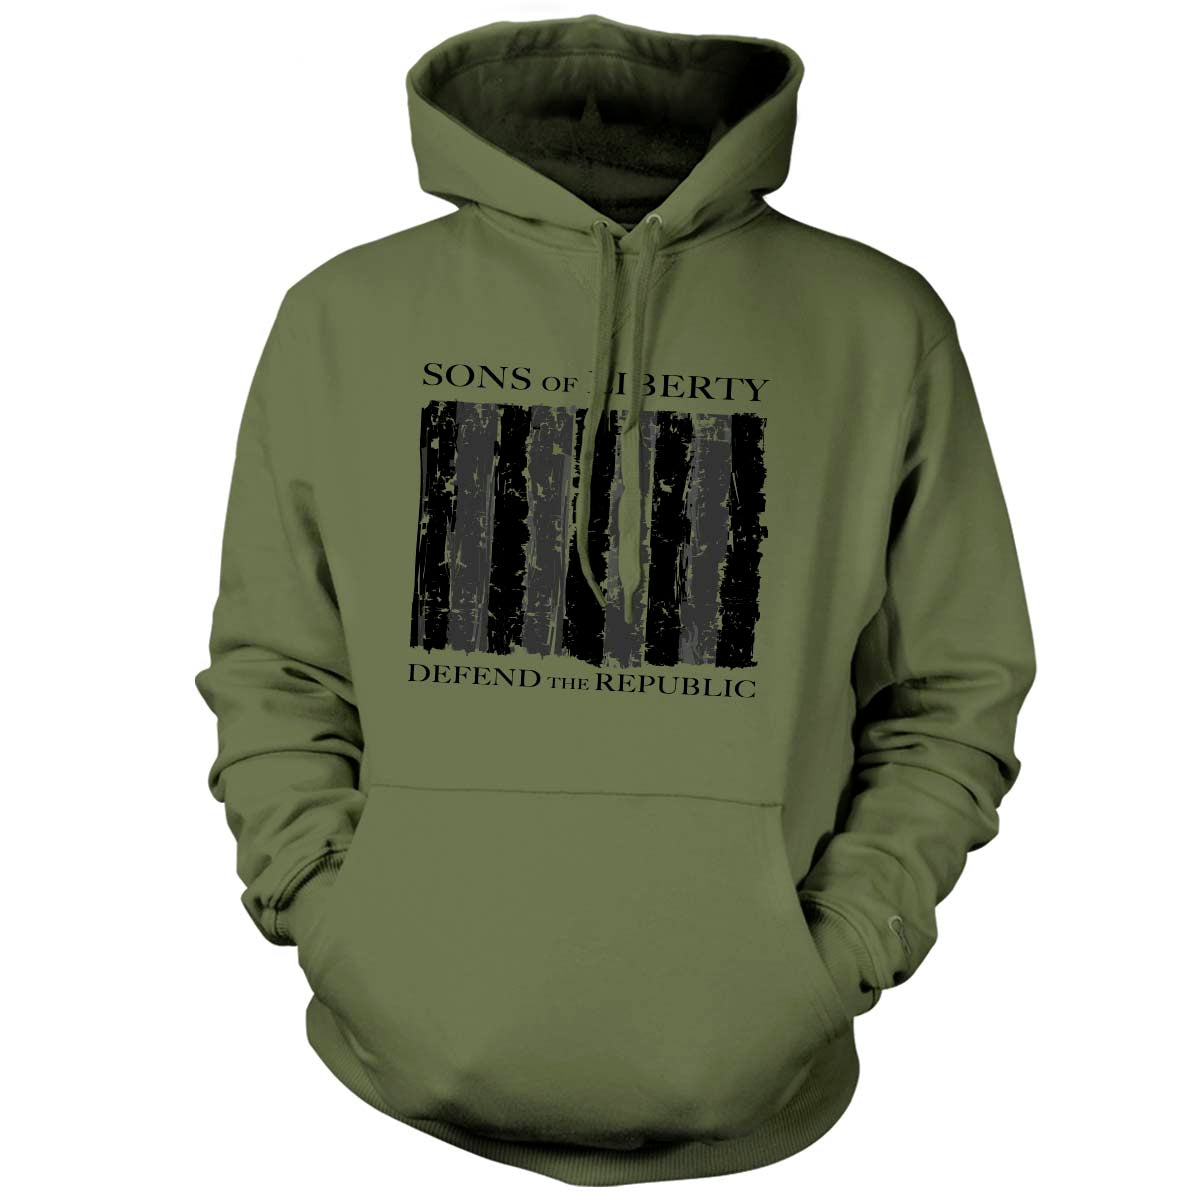 Sons of Liberty - Defend the Republic - Hoodie - Military Green - T-Shirts - Pipe Hitters Union